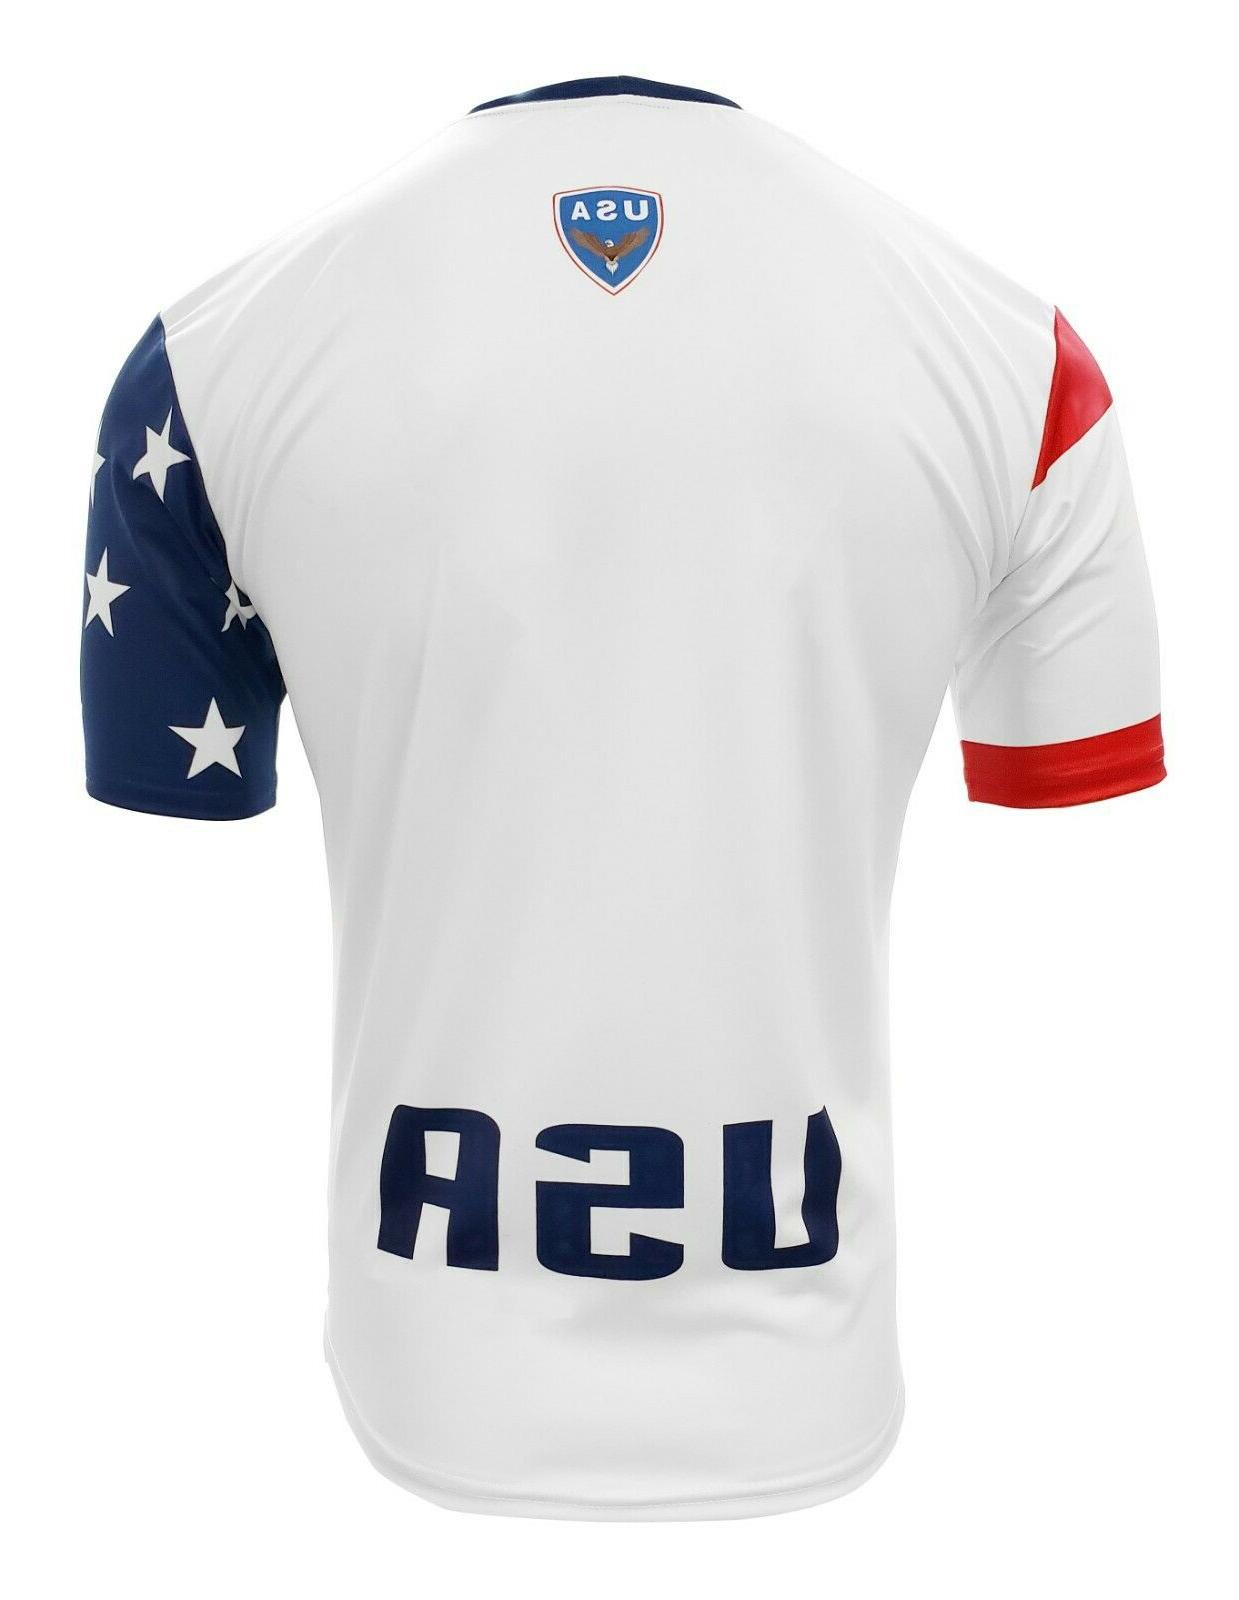 Men's USA Jersey White/Red/Blue